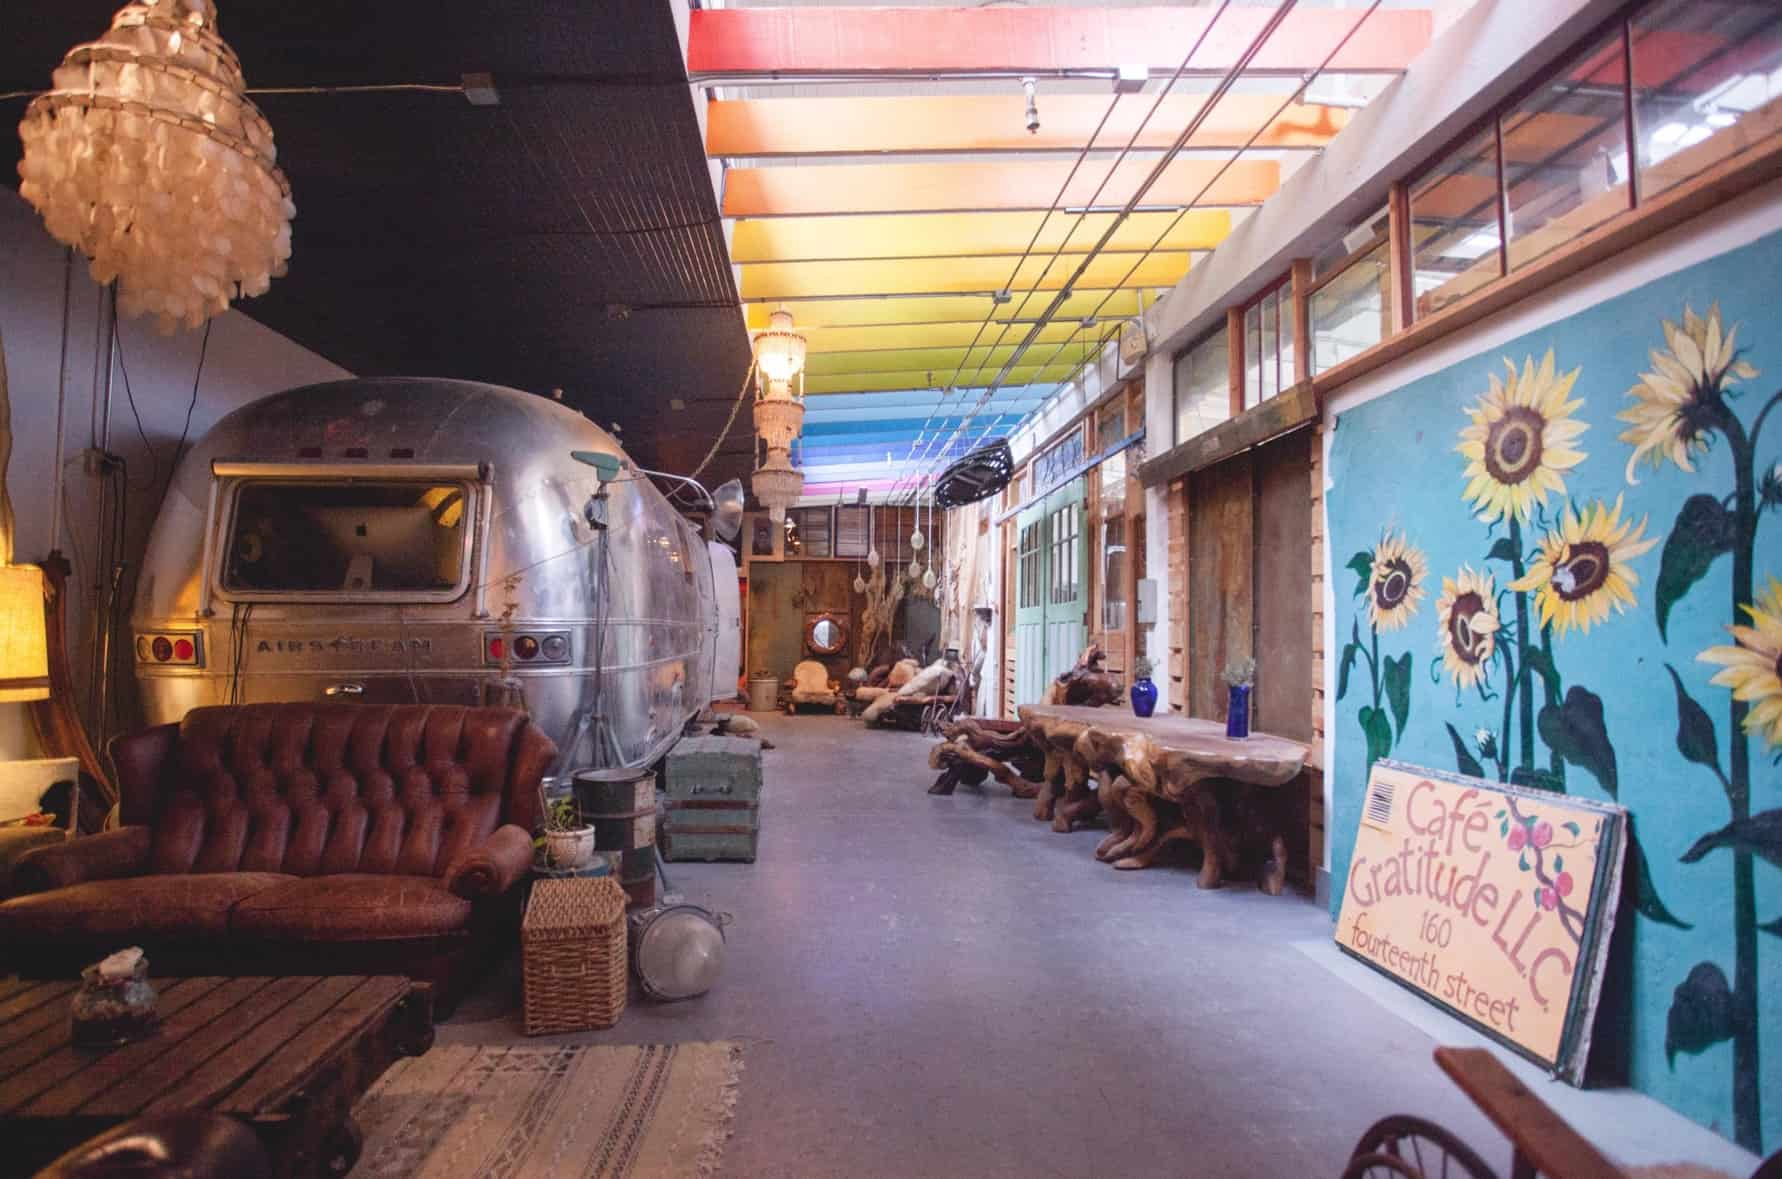 Unusual venues: Airstream